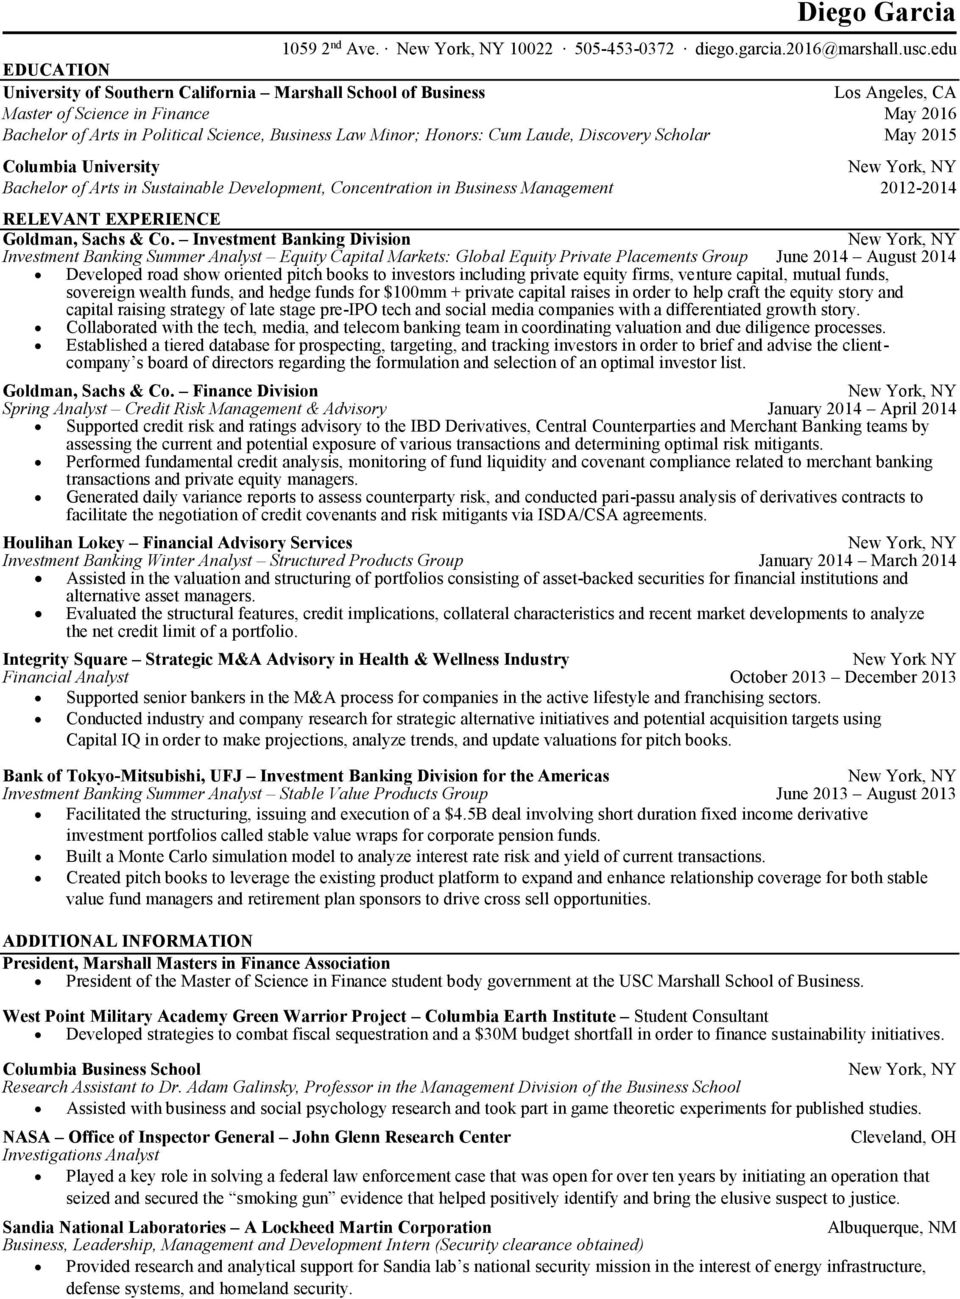 Fancy Business School Resume Book Pdf Embellishment - Professional ...